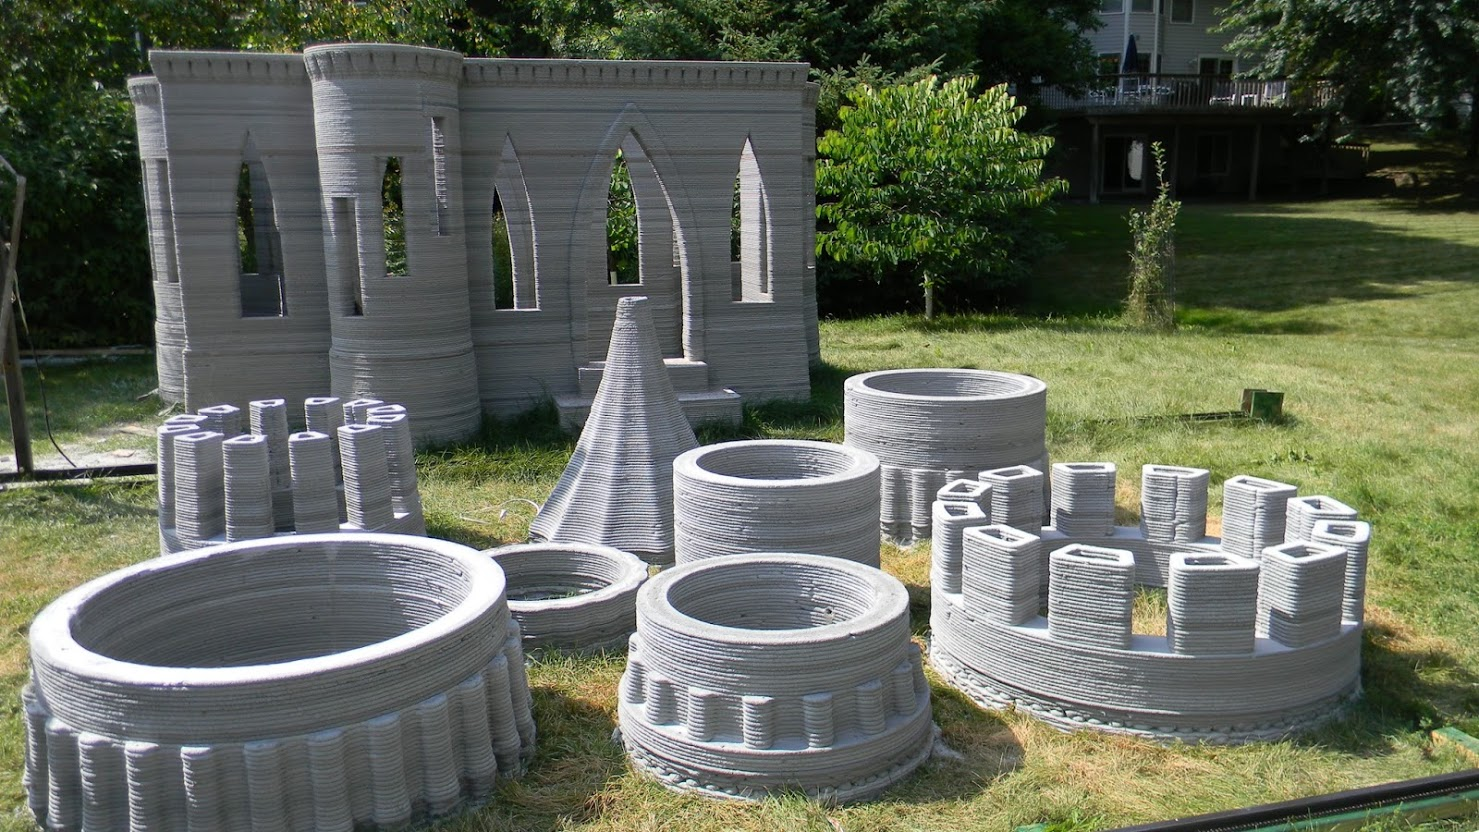 a 3d printing enthusiast has printed himself a small castle